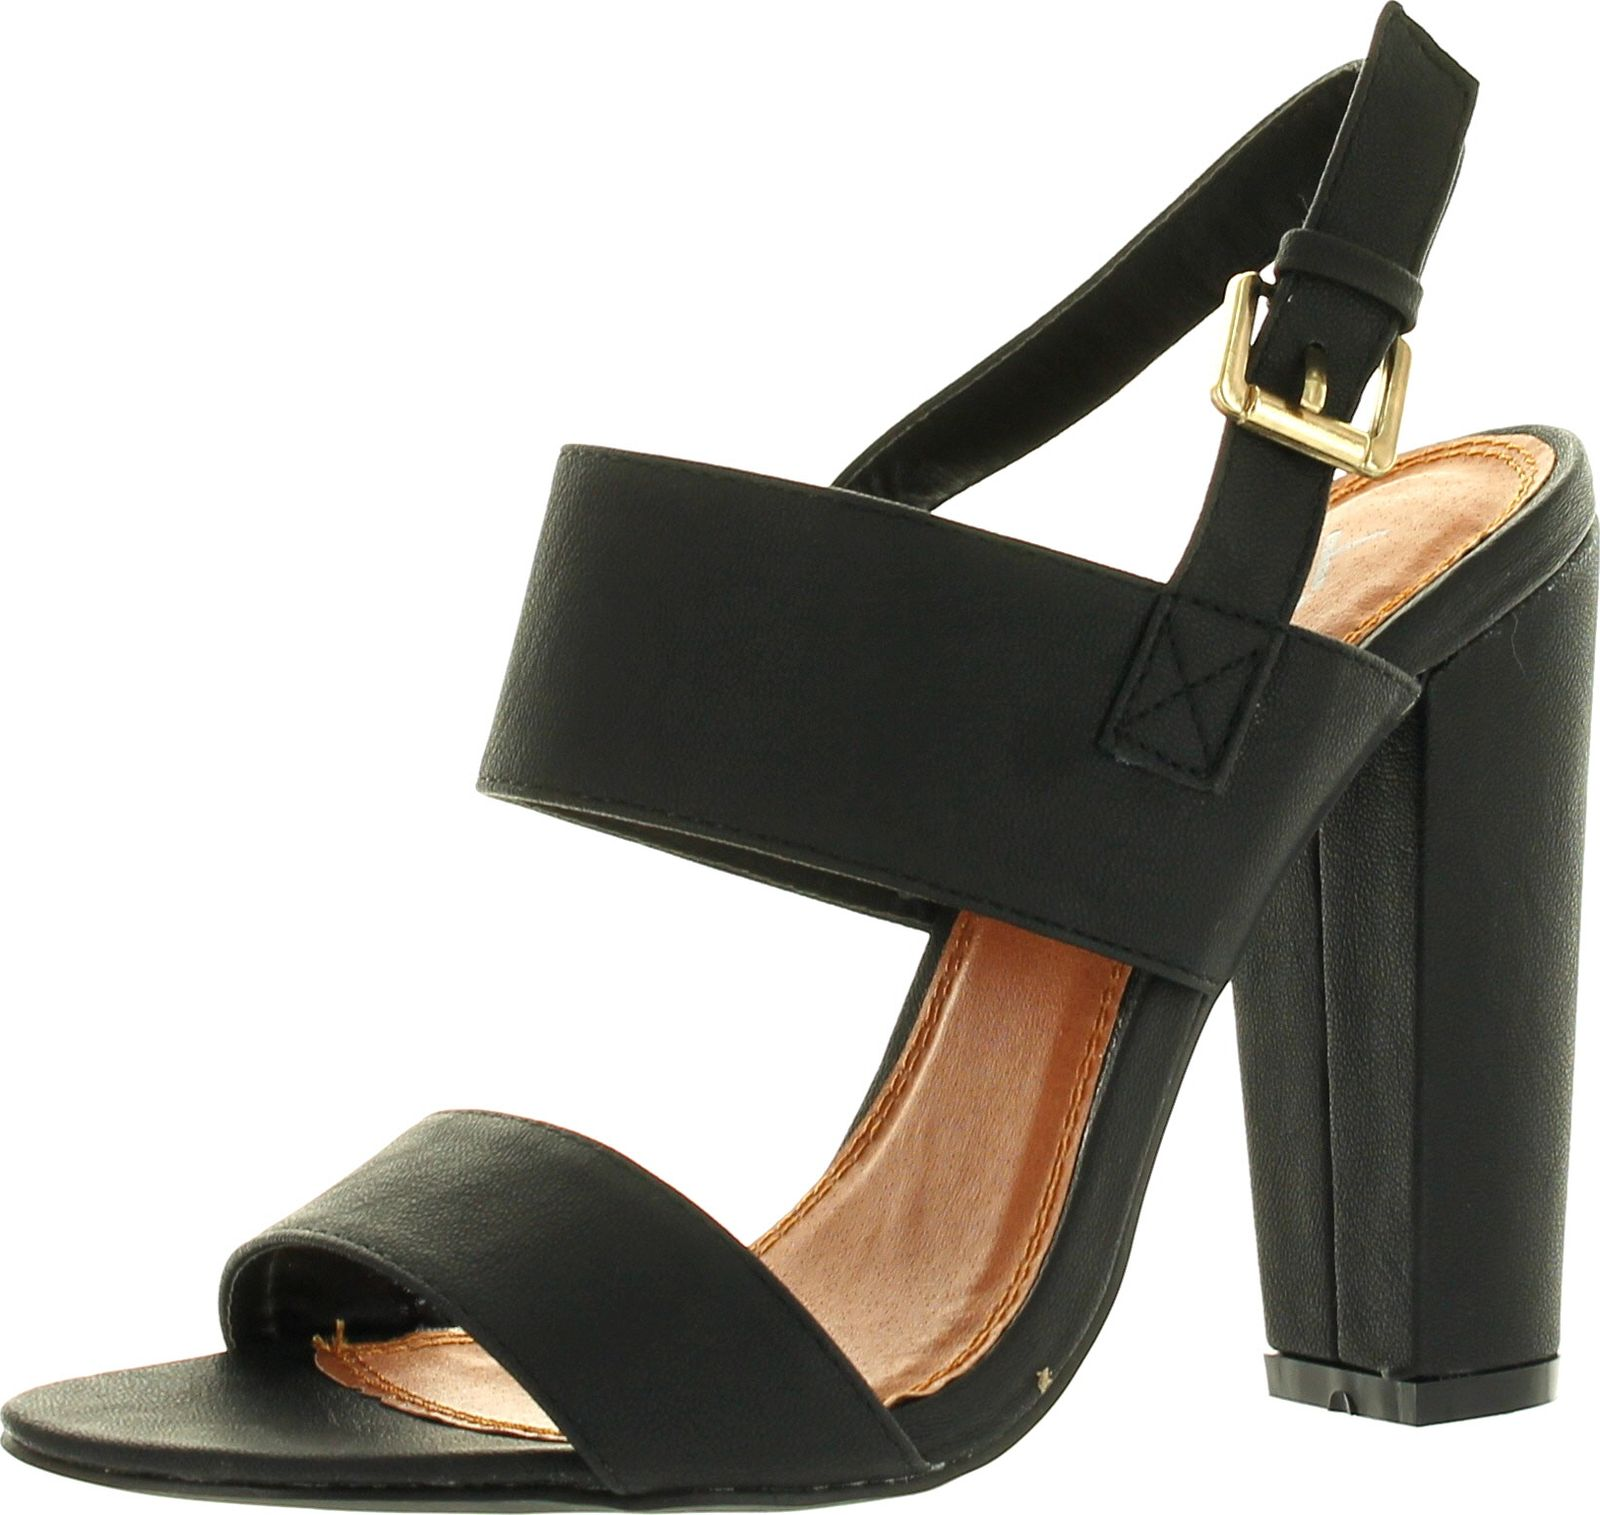 Chunky Heel Ankle Strap Sandals xem3xhfm